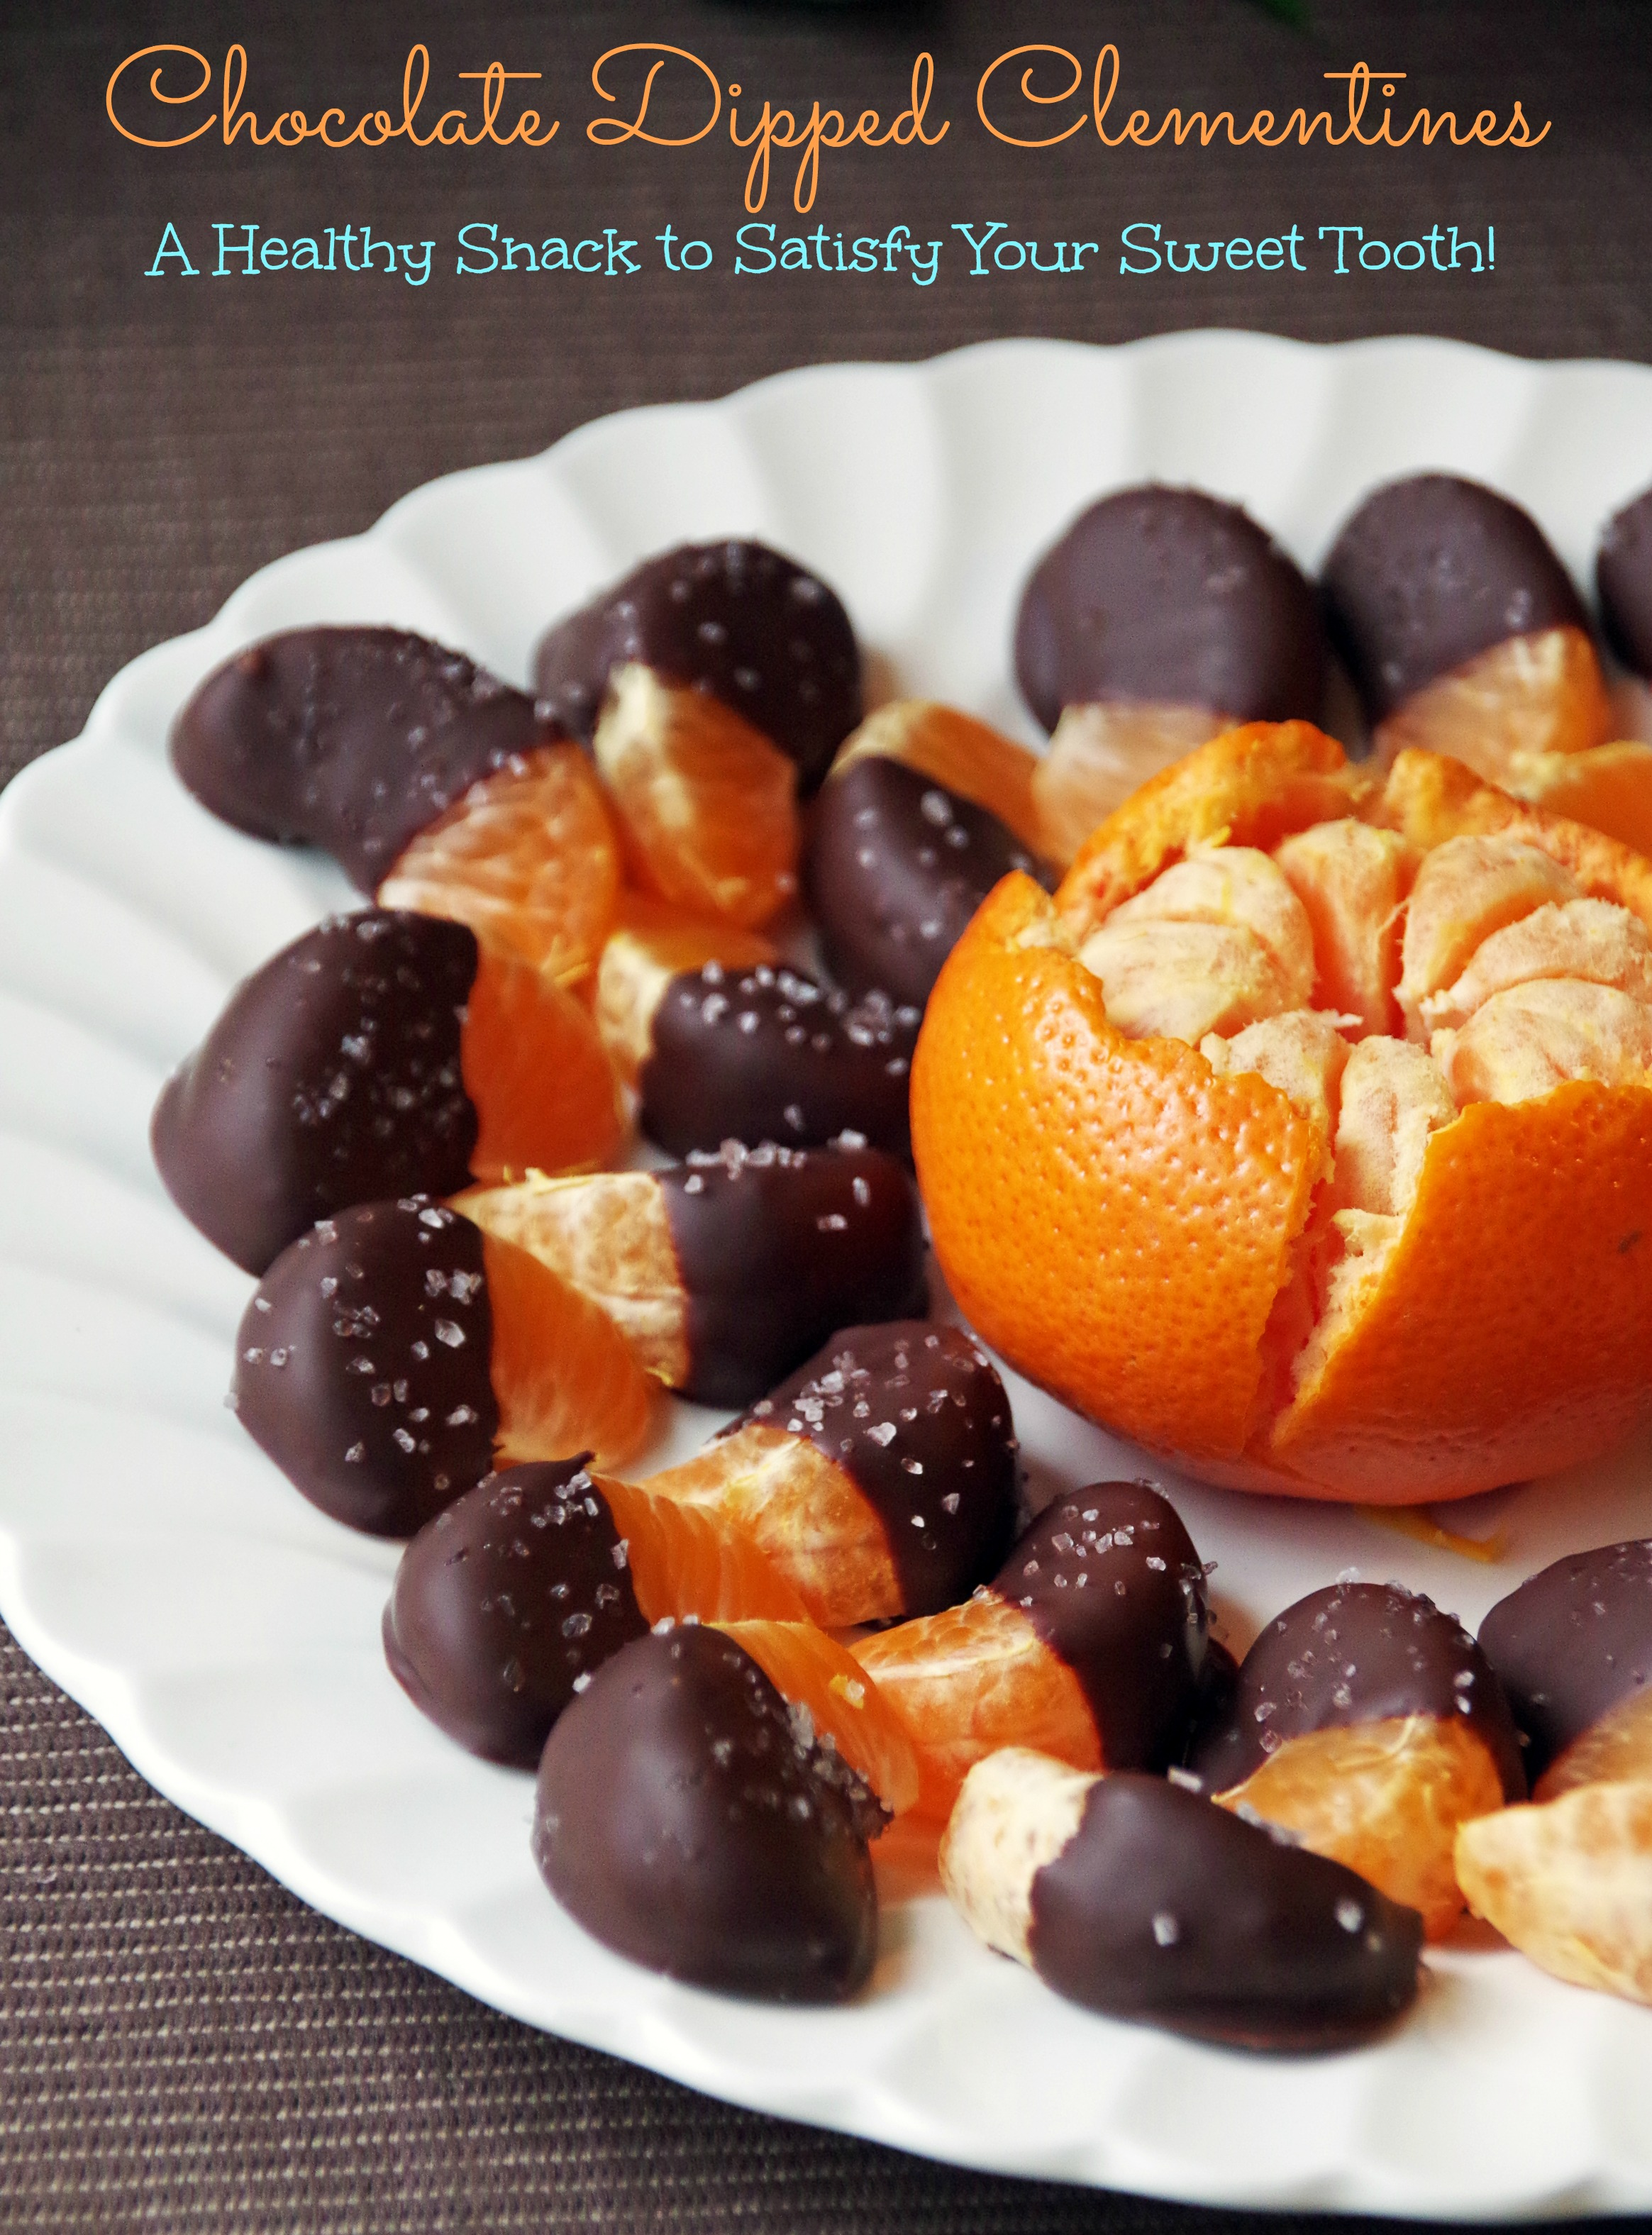 Chocolate Dipped Clementines for a healthy snack recipe 2